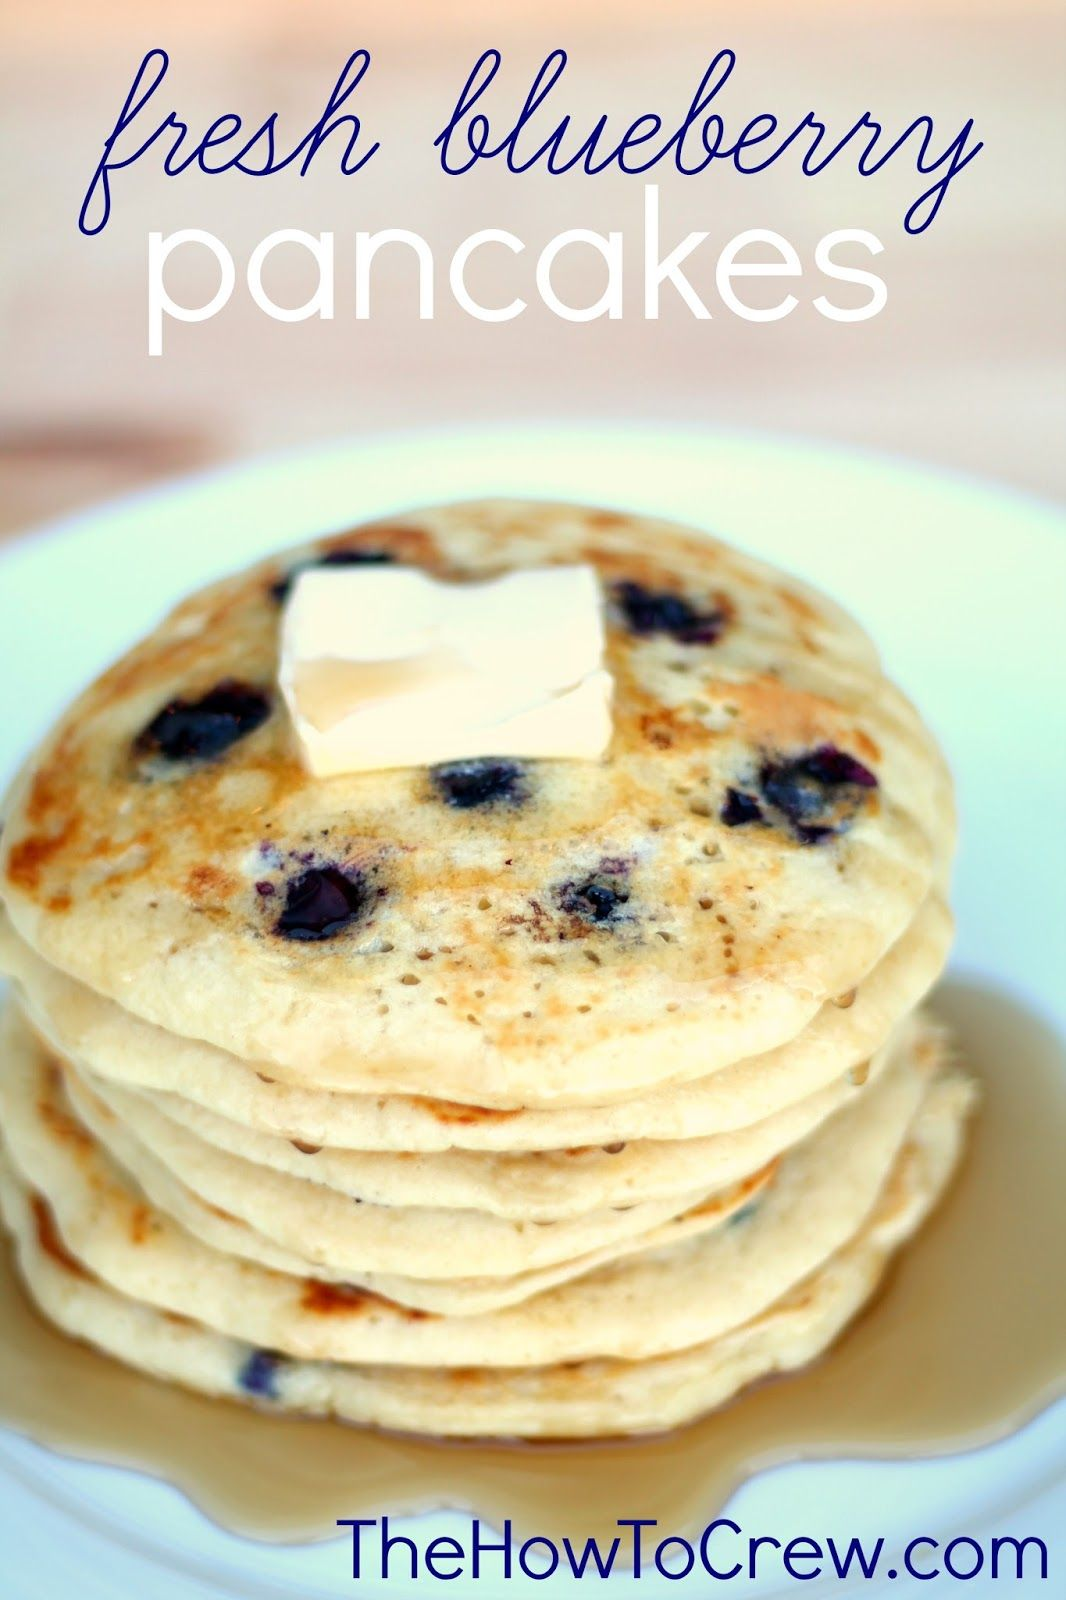 How To Make Fresh Blueberry Pancakes from TheHowToCrew.com.  These pancakes come out perfect every time! #recipes #pancakes #blueberry